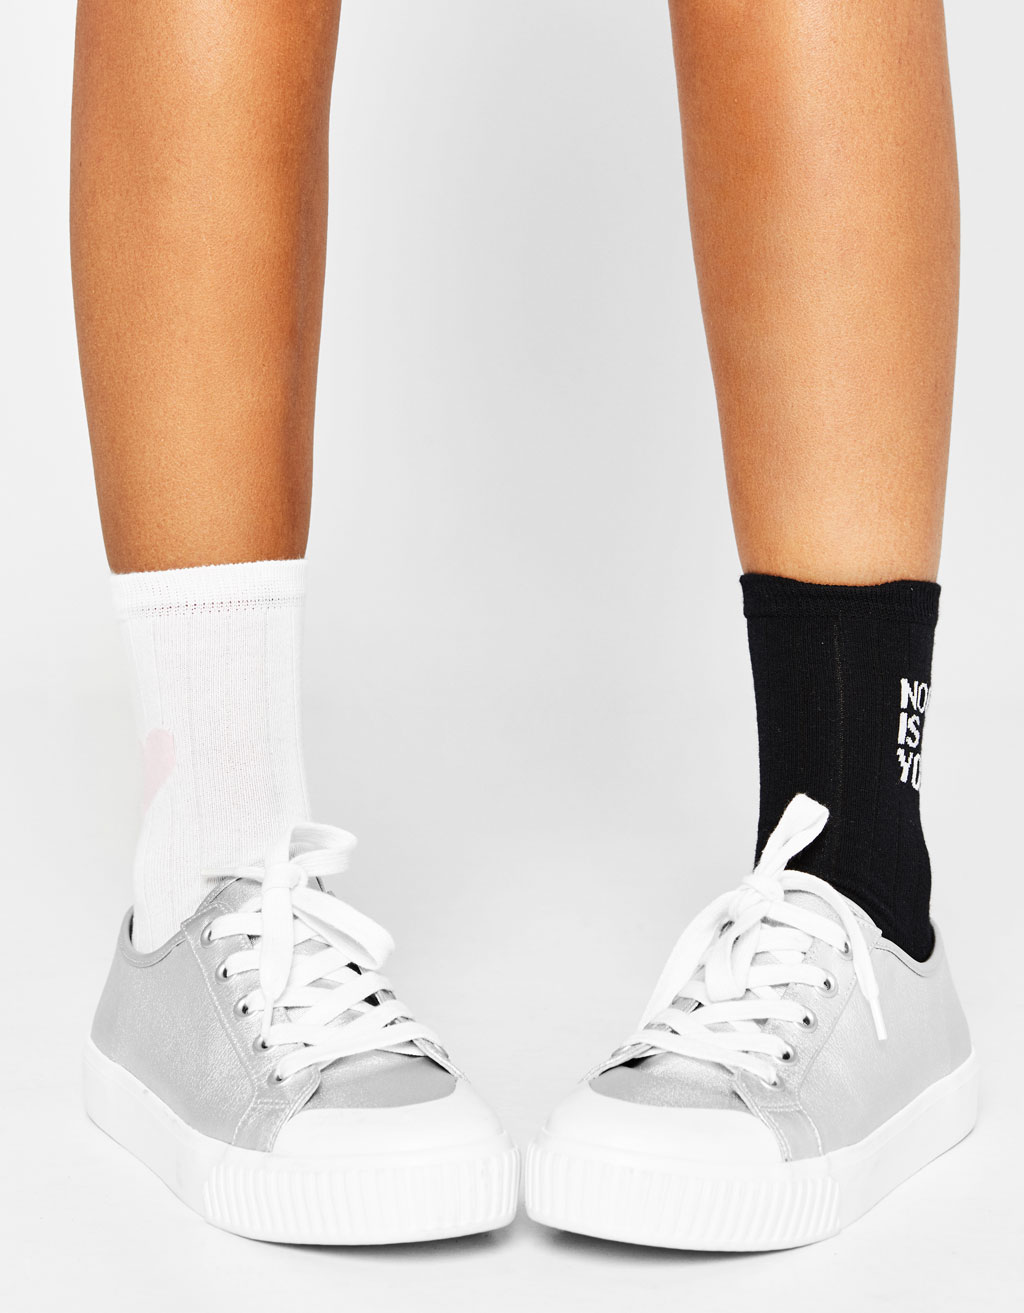 Set of 2 pairs of socks with slogan